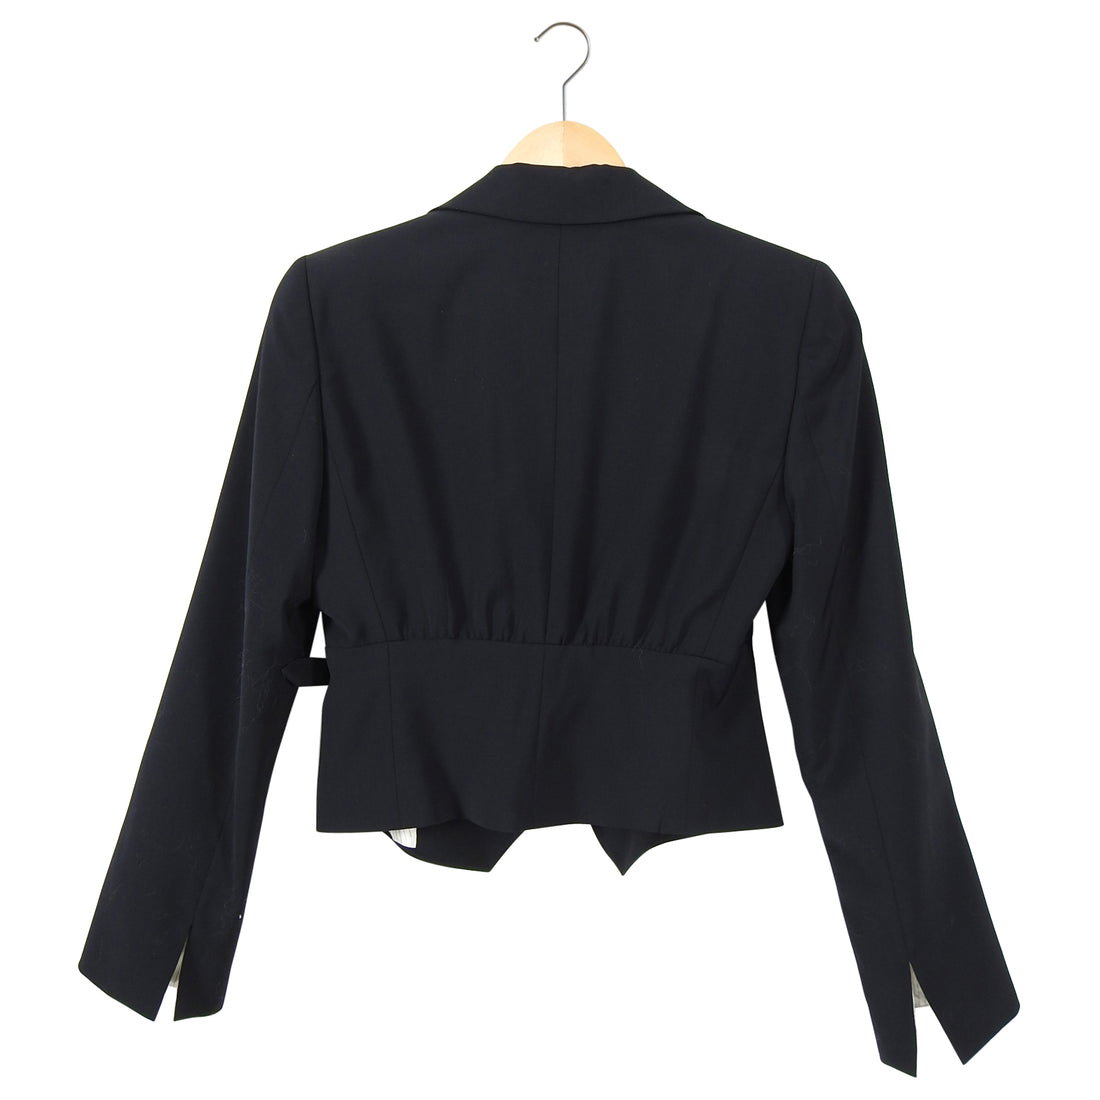 Emporio Armani Black Fitted Blazer with Side Detail - IT42 / 6